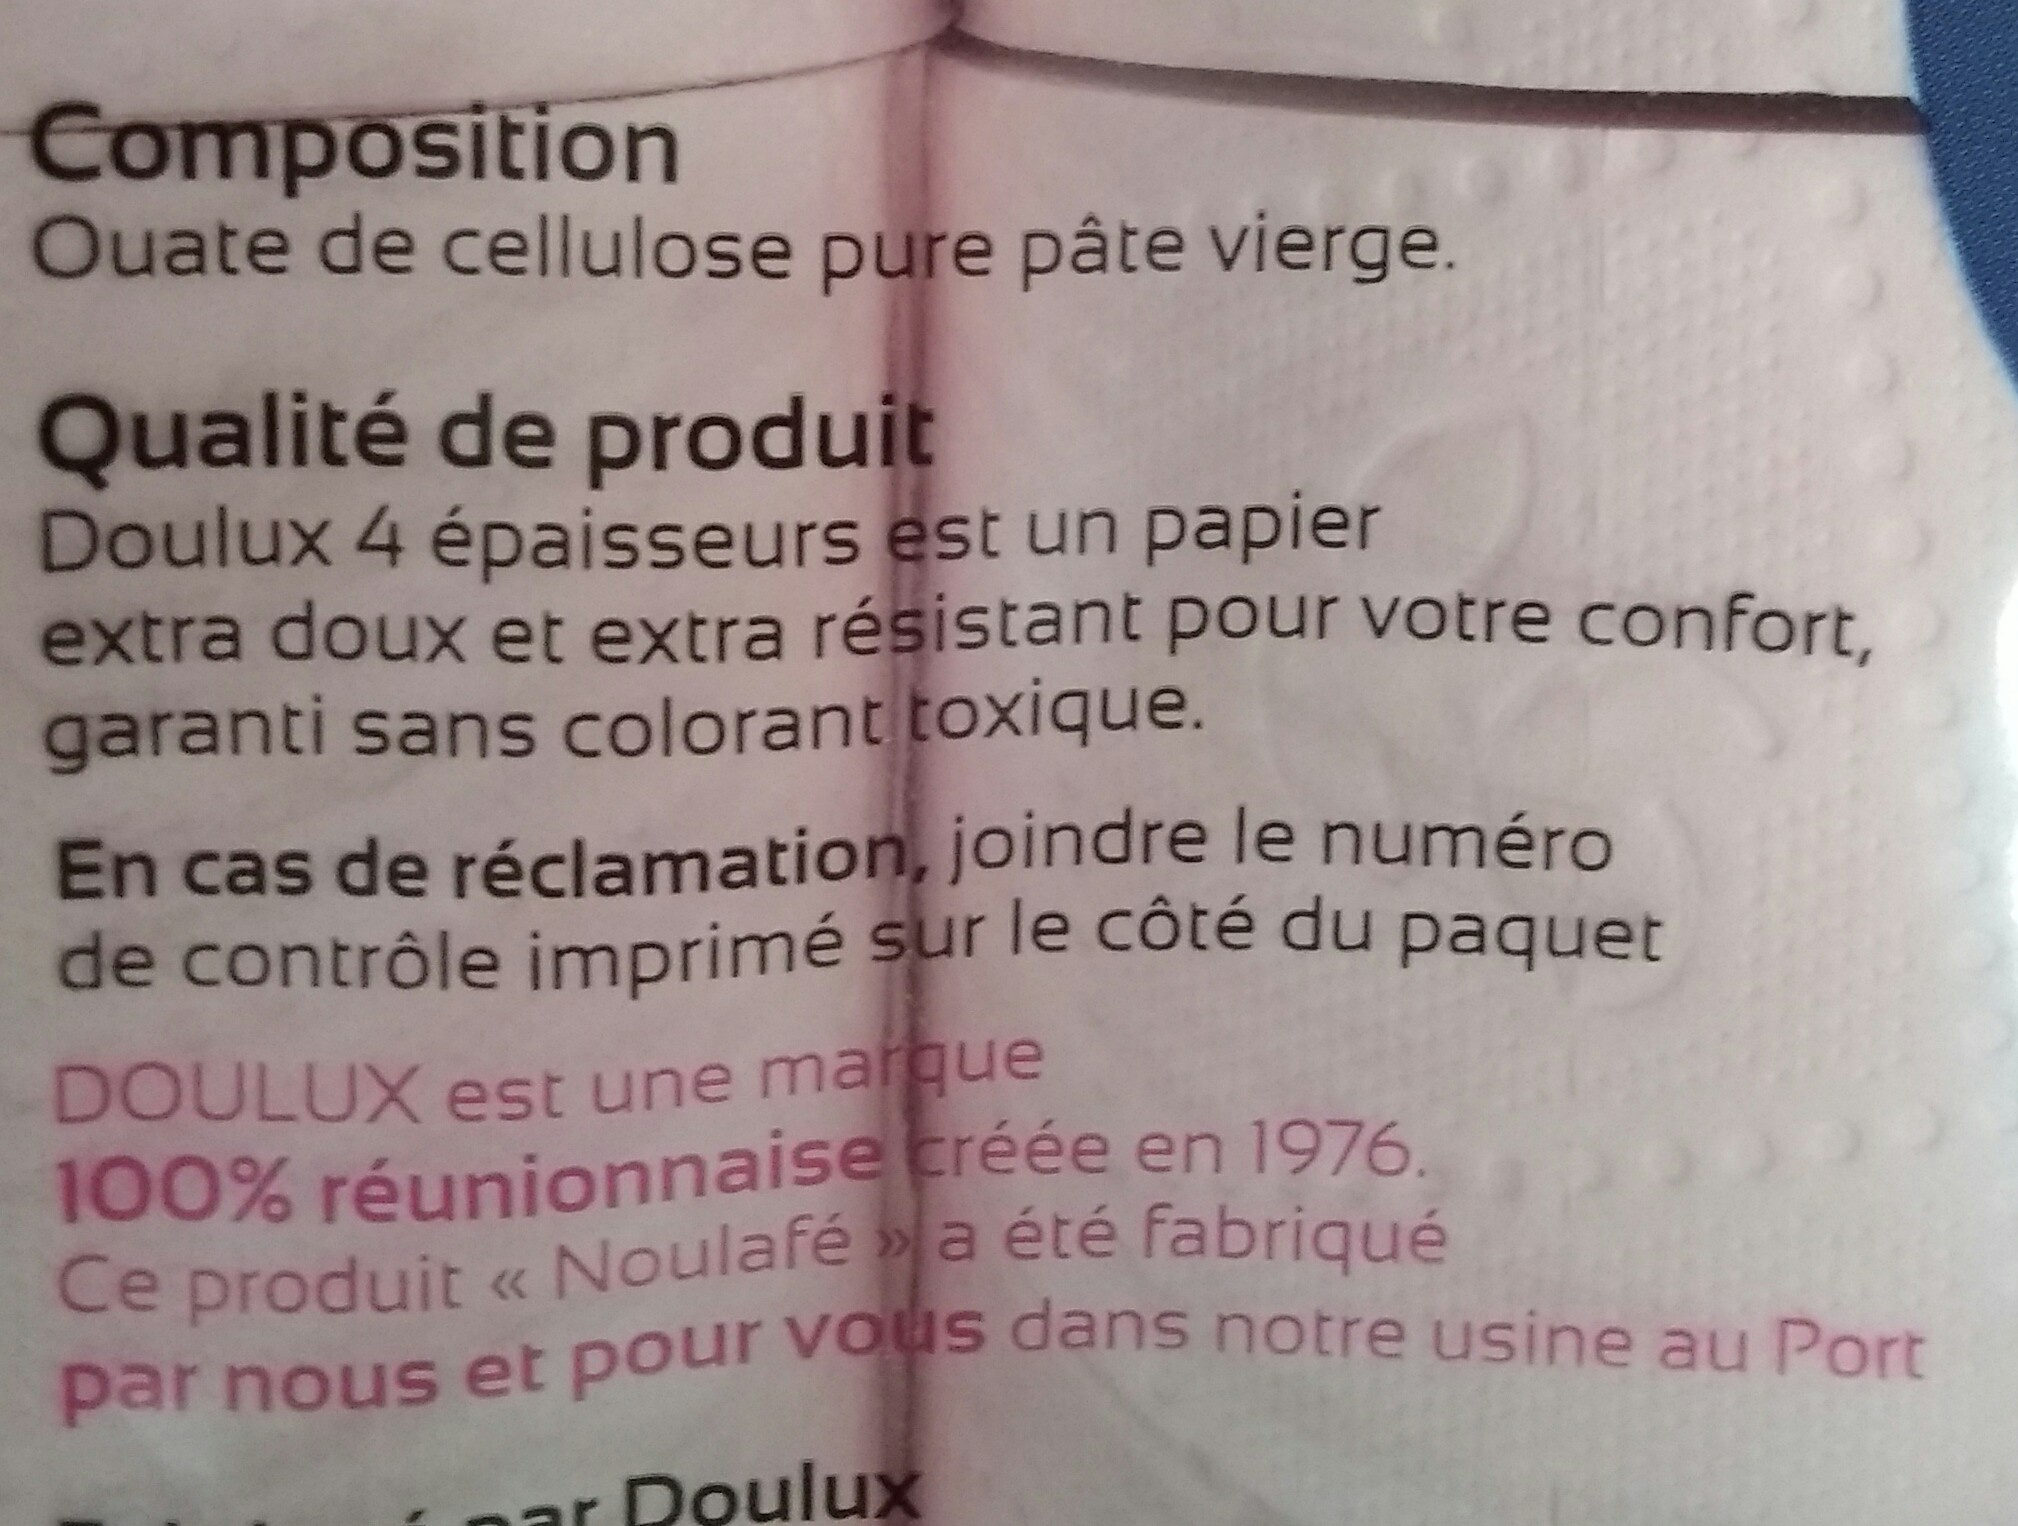 Doulux 4 épaisseurs ultra confort - Ingredients - fr